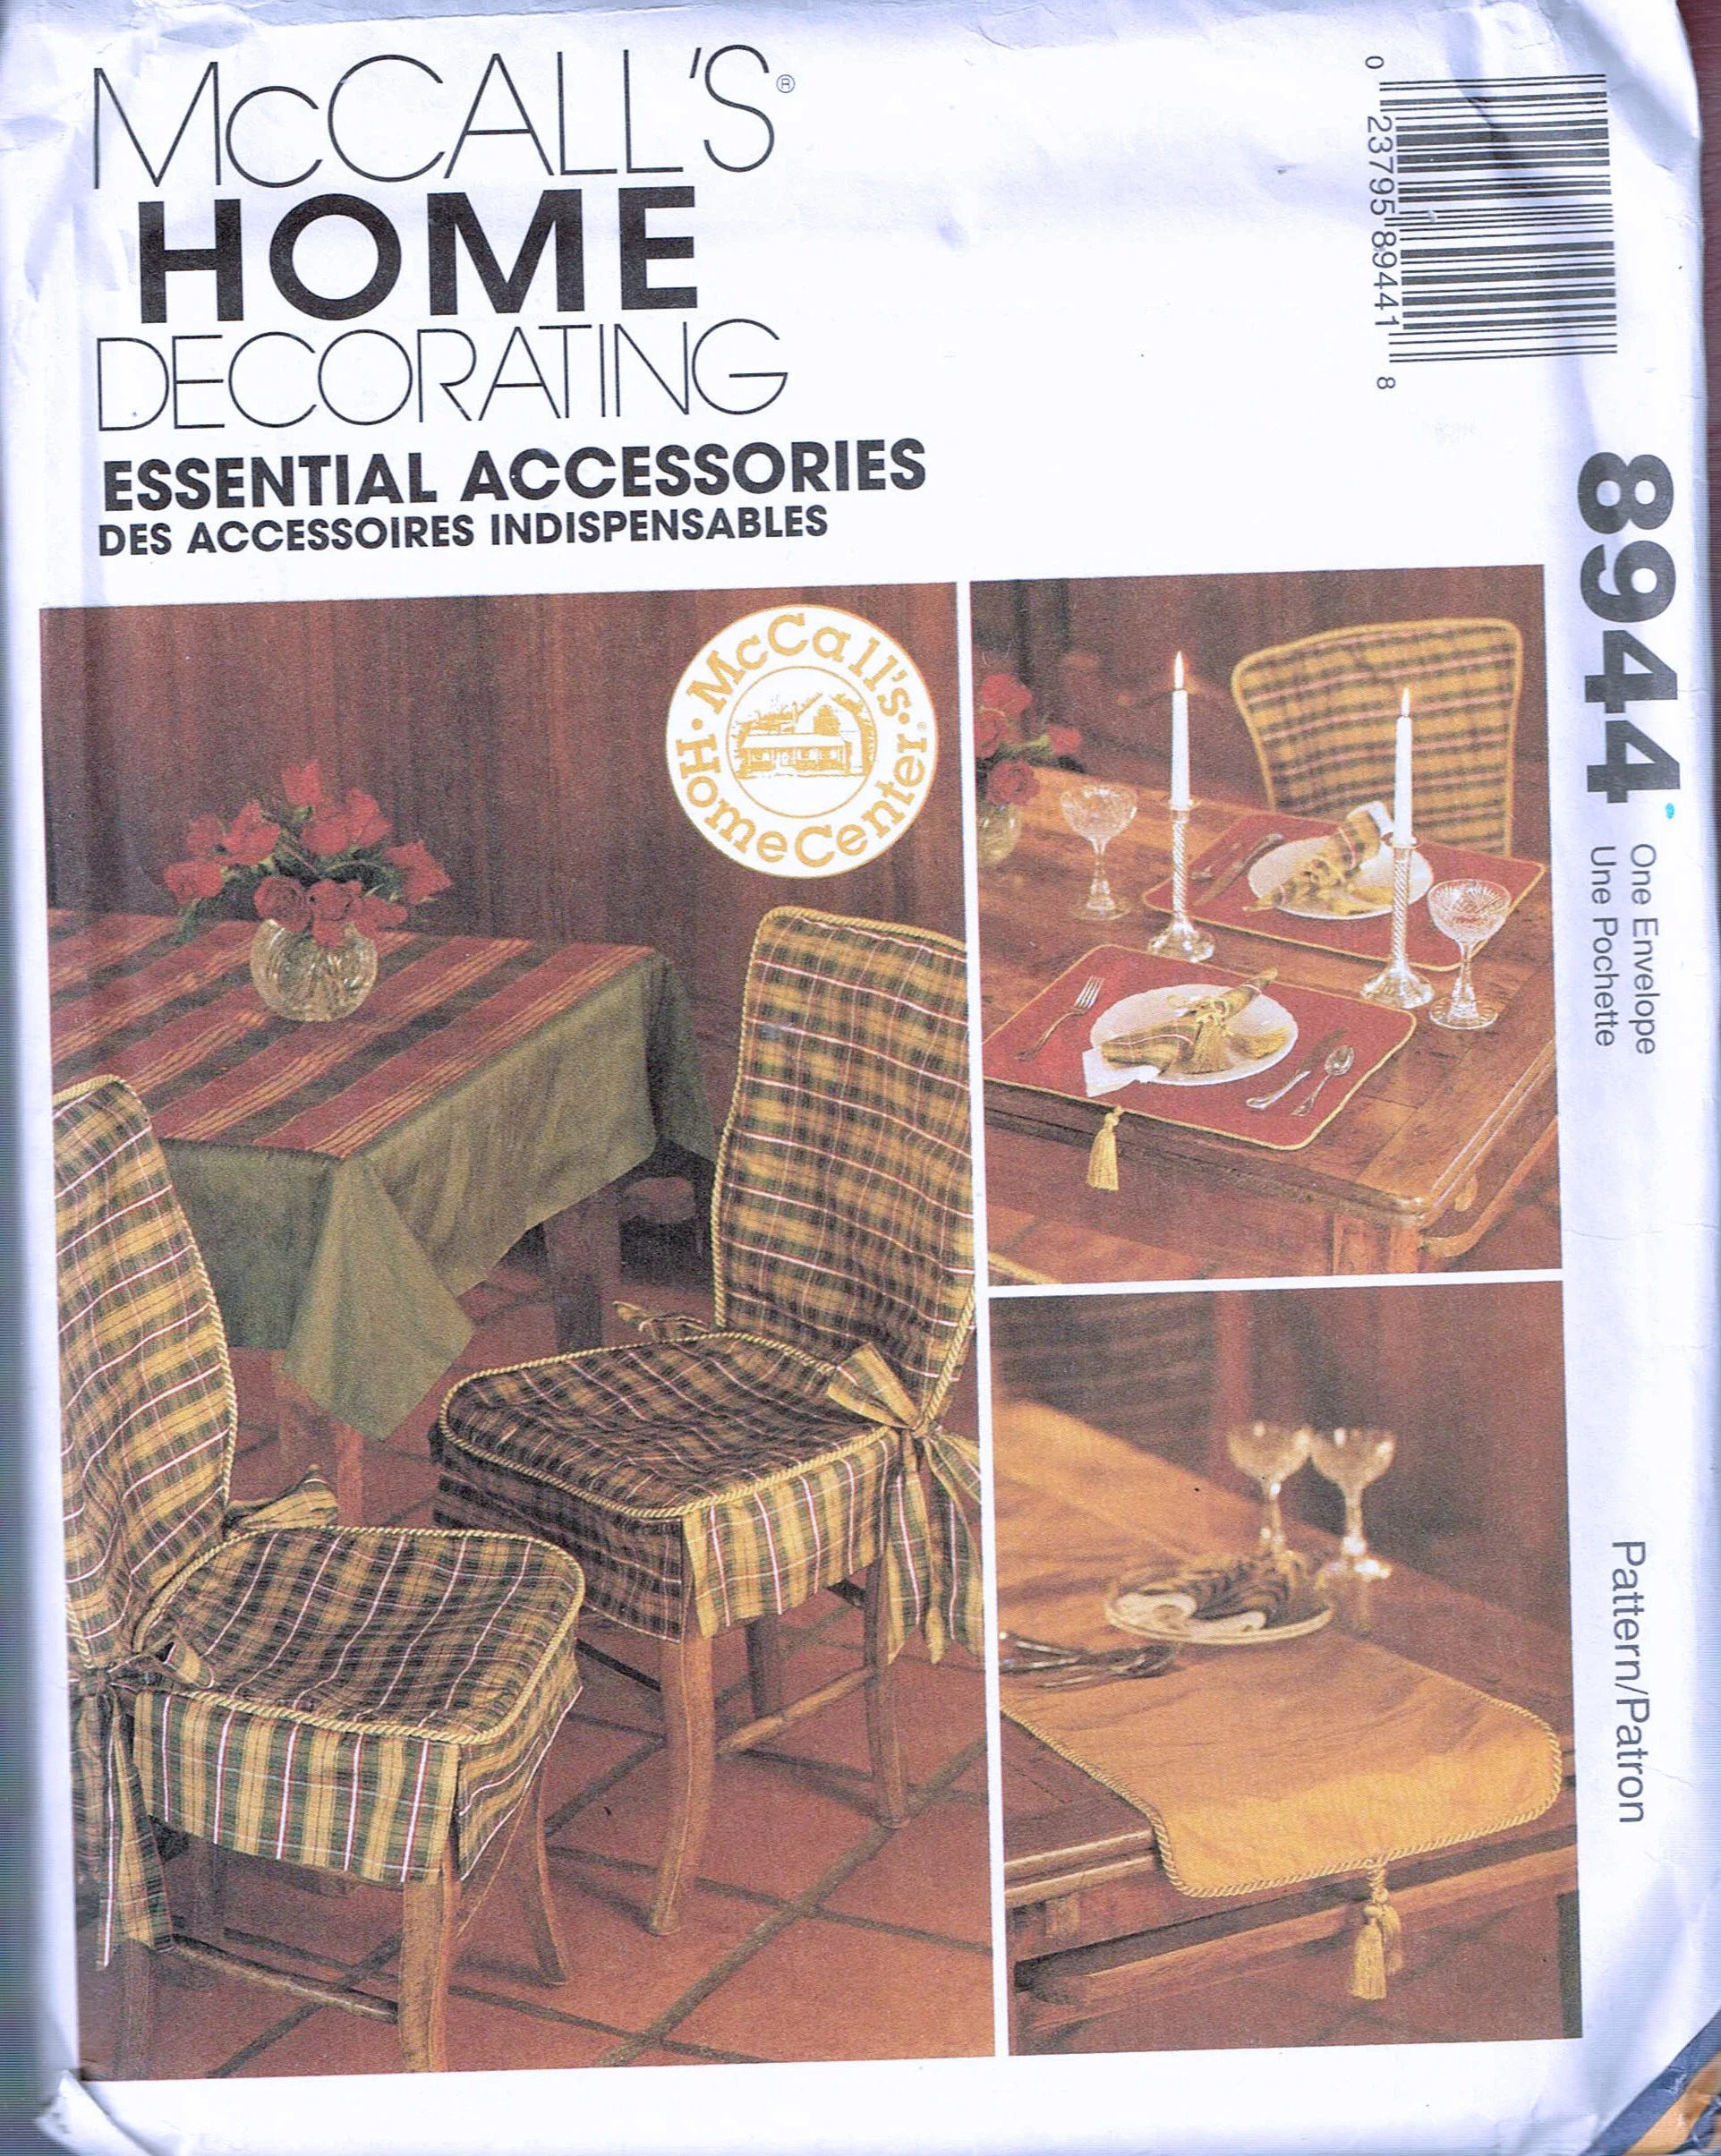 Chair Cover Patterns Tie Back Wooden Chair Cover Sewing Patterns Tie On Slip Cover Home Decor Sewing Pattern Mccalls Home Decor 8944